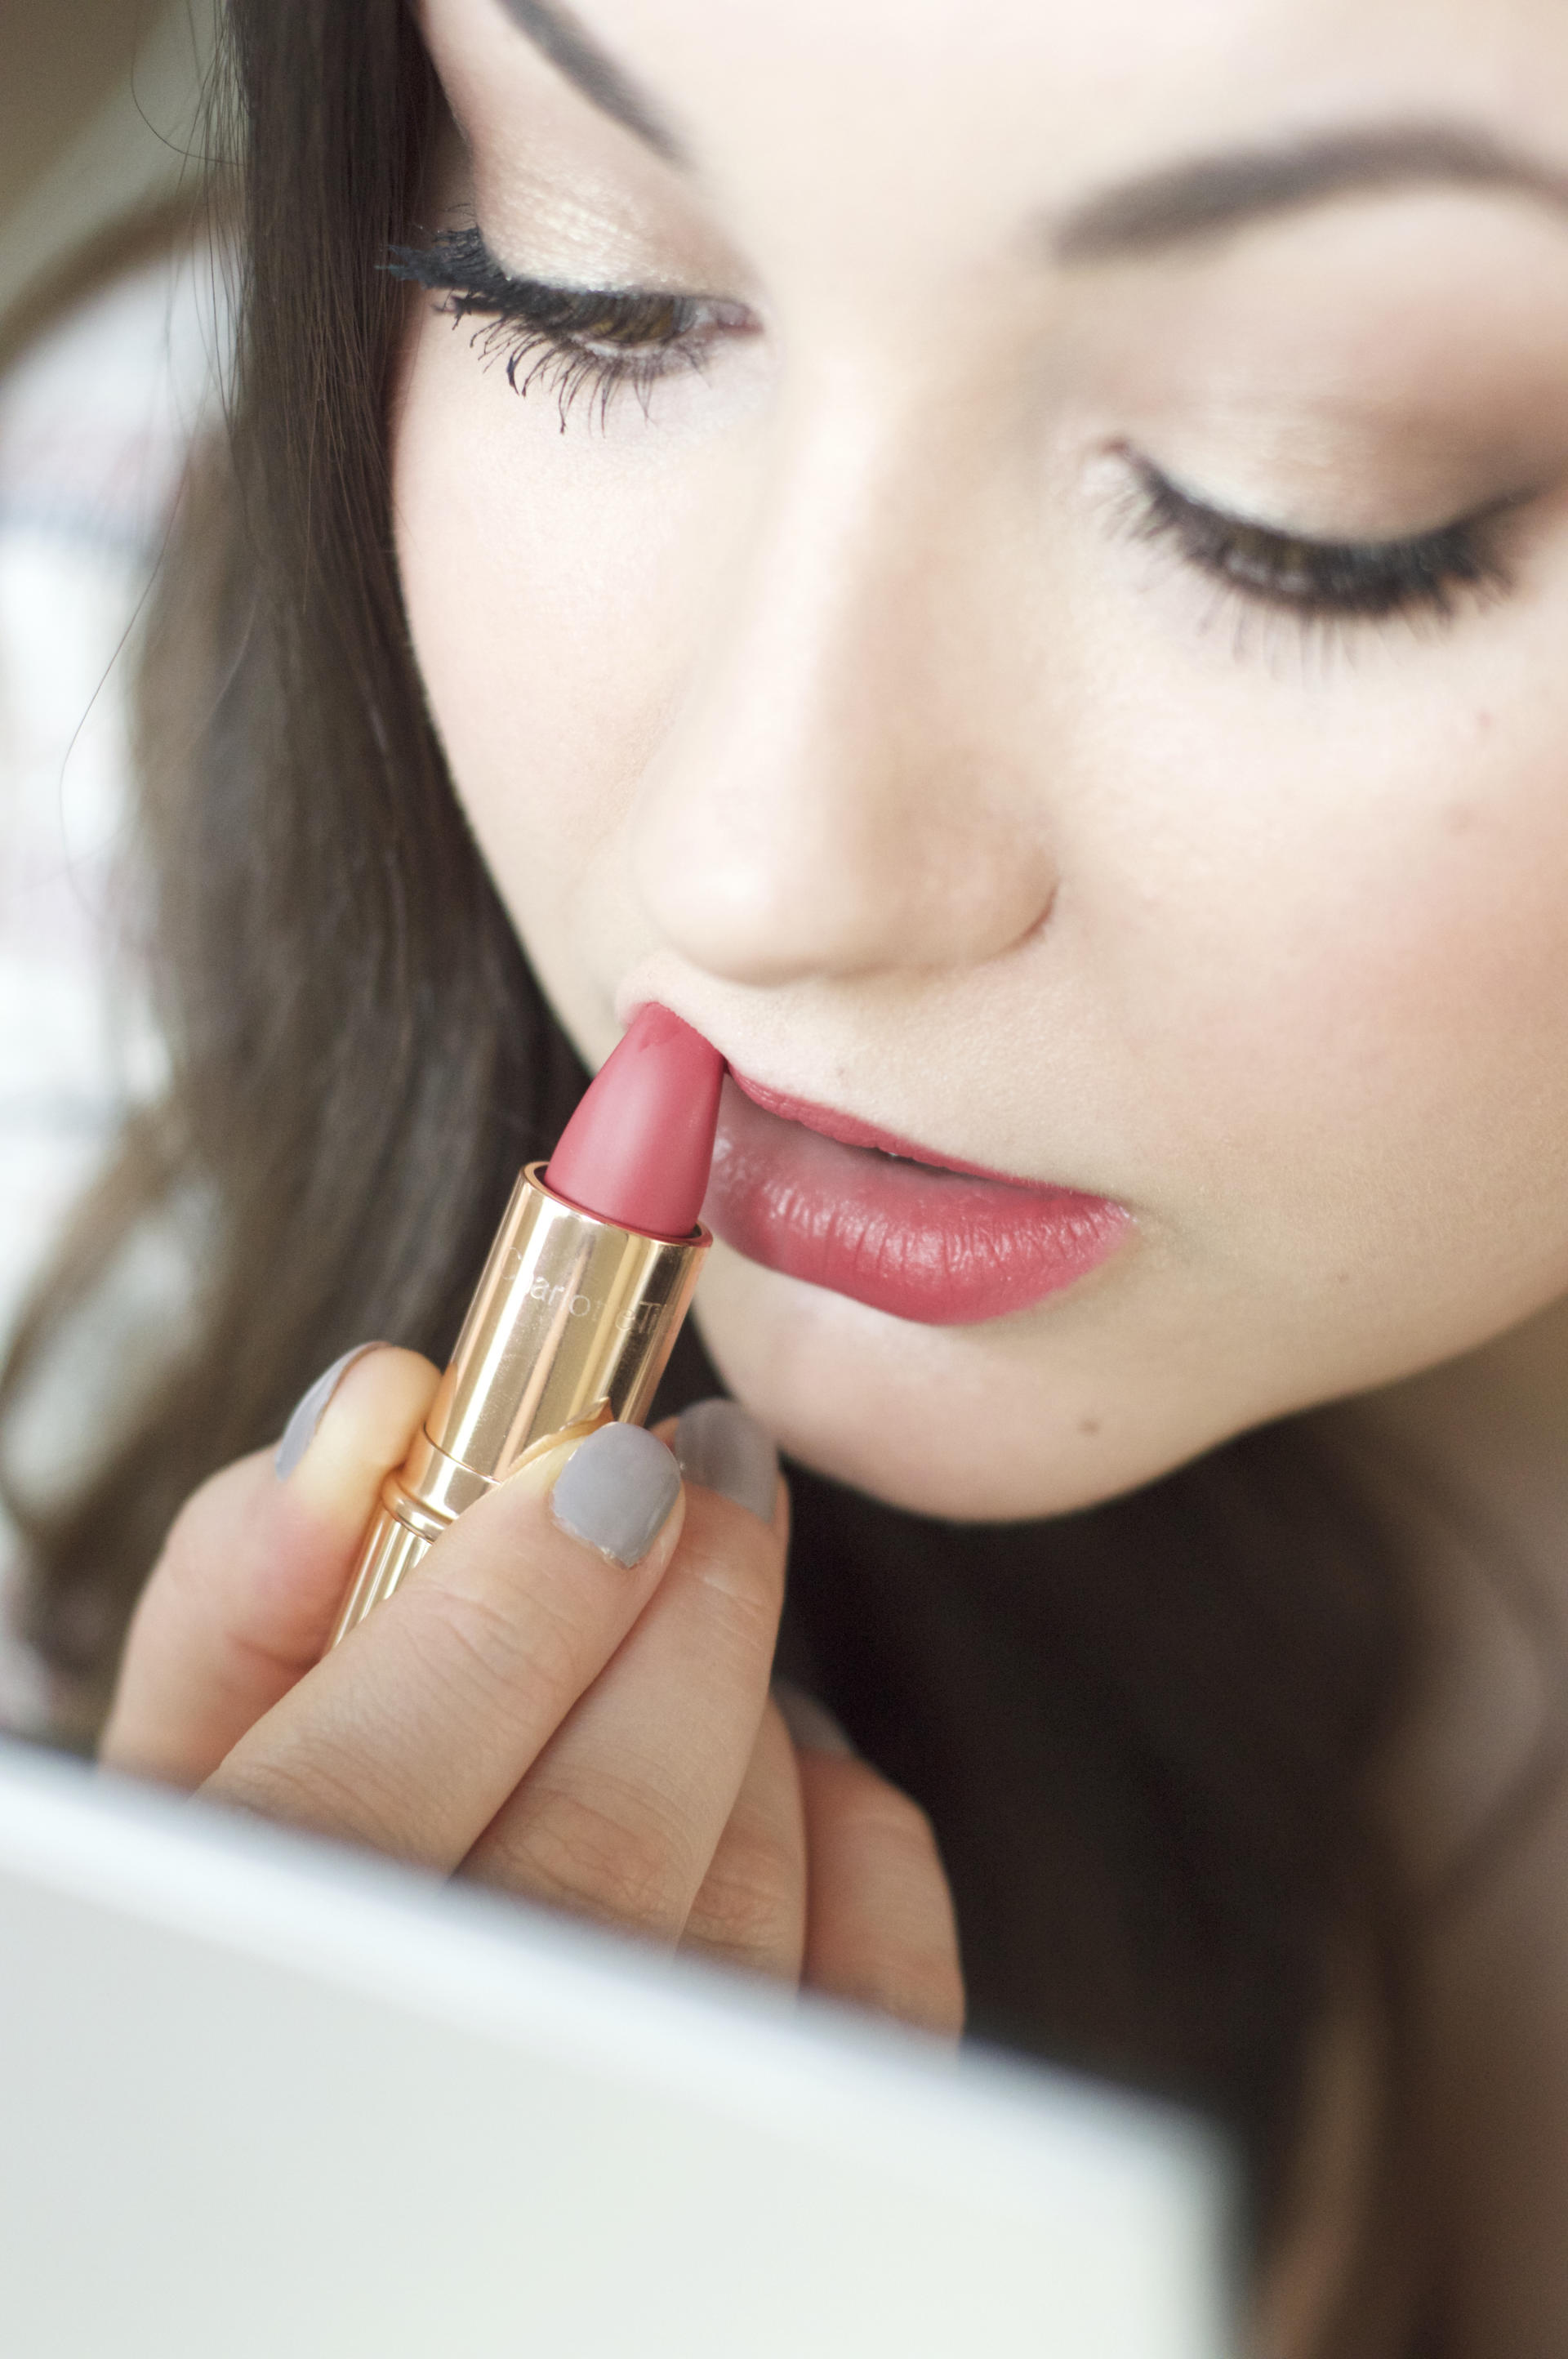 Made From Beauty Charlotte Tilbury Matte Revolution Lipstick in Amazing Grace Review